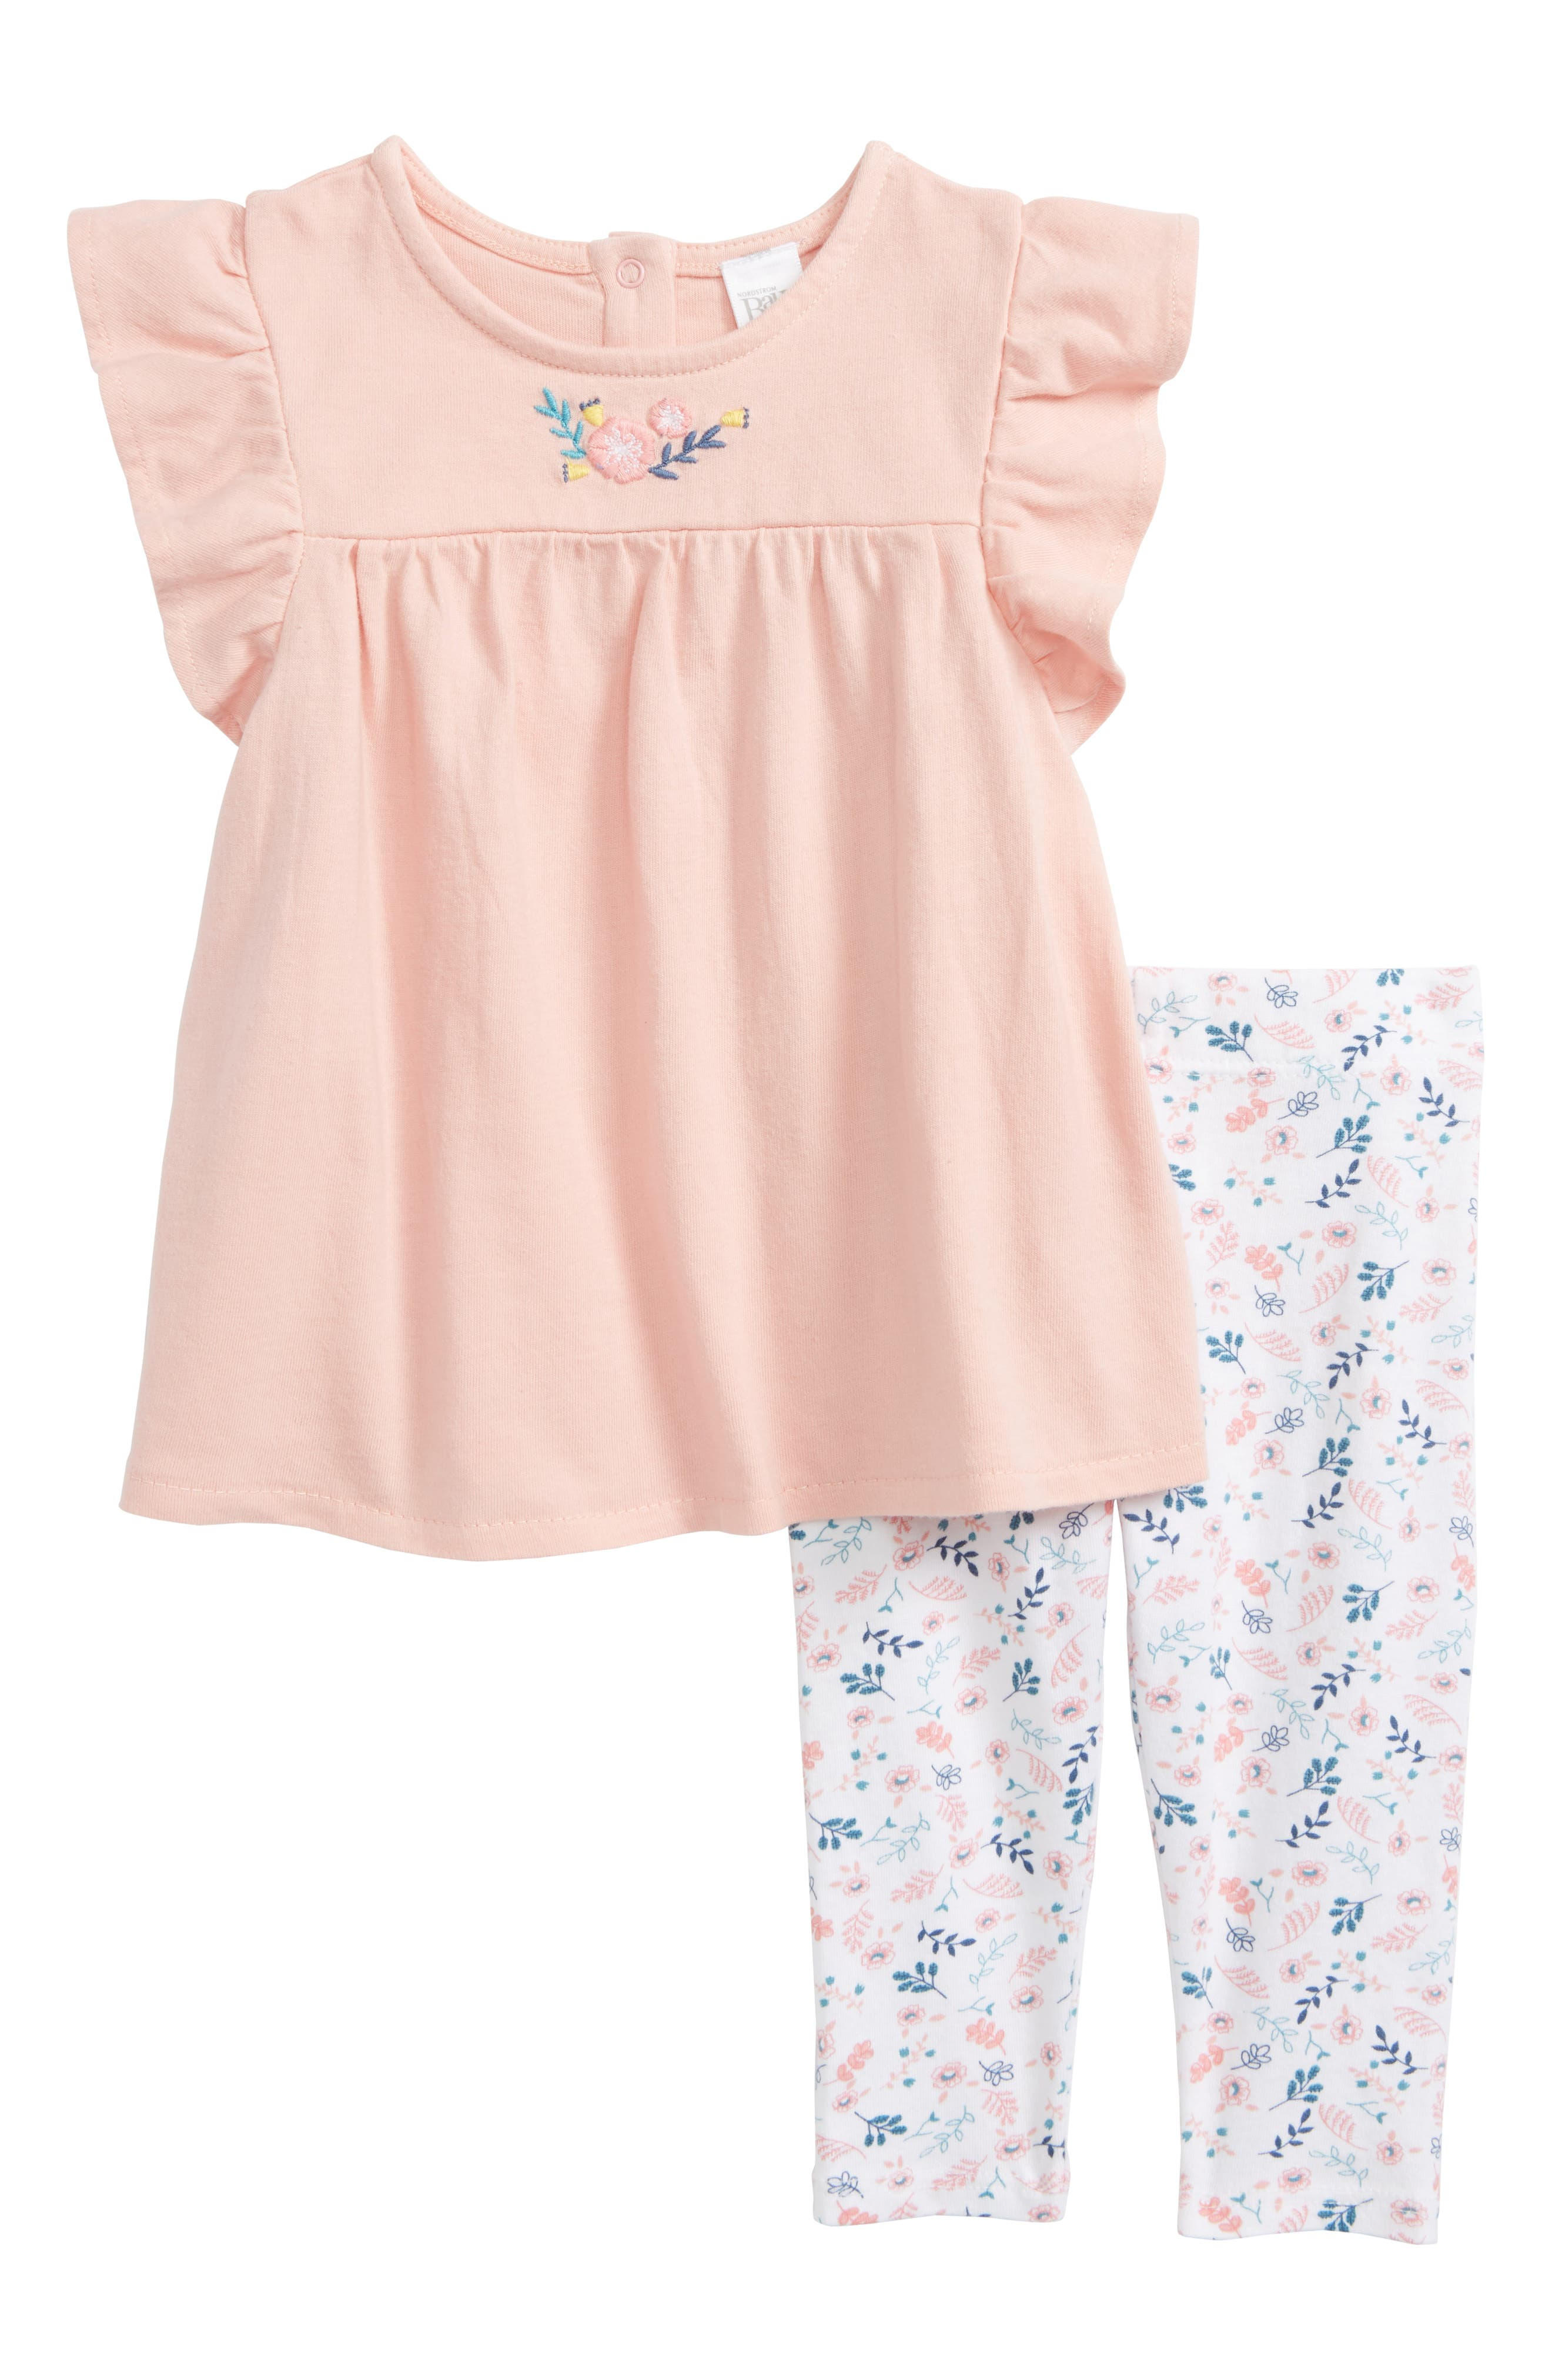 Embroidered Tunic & Leggings Set,                         Main,                         color, Pink Powder Wild Flowers